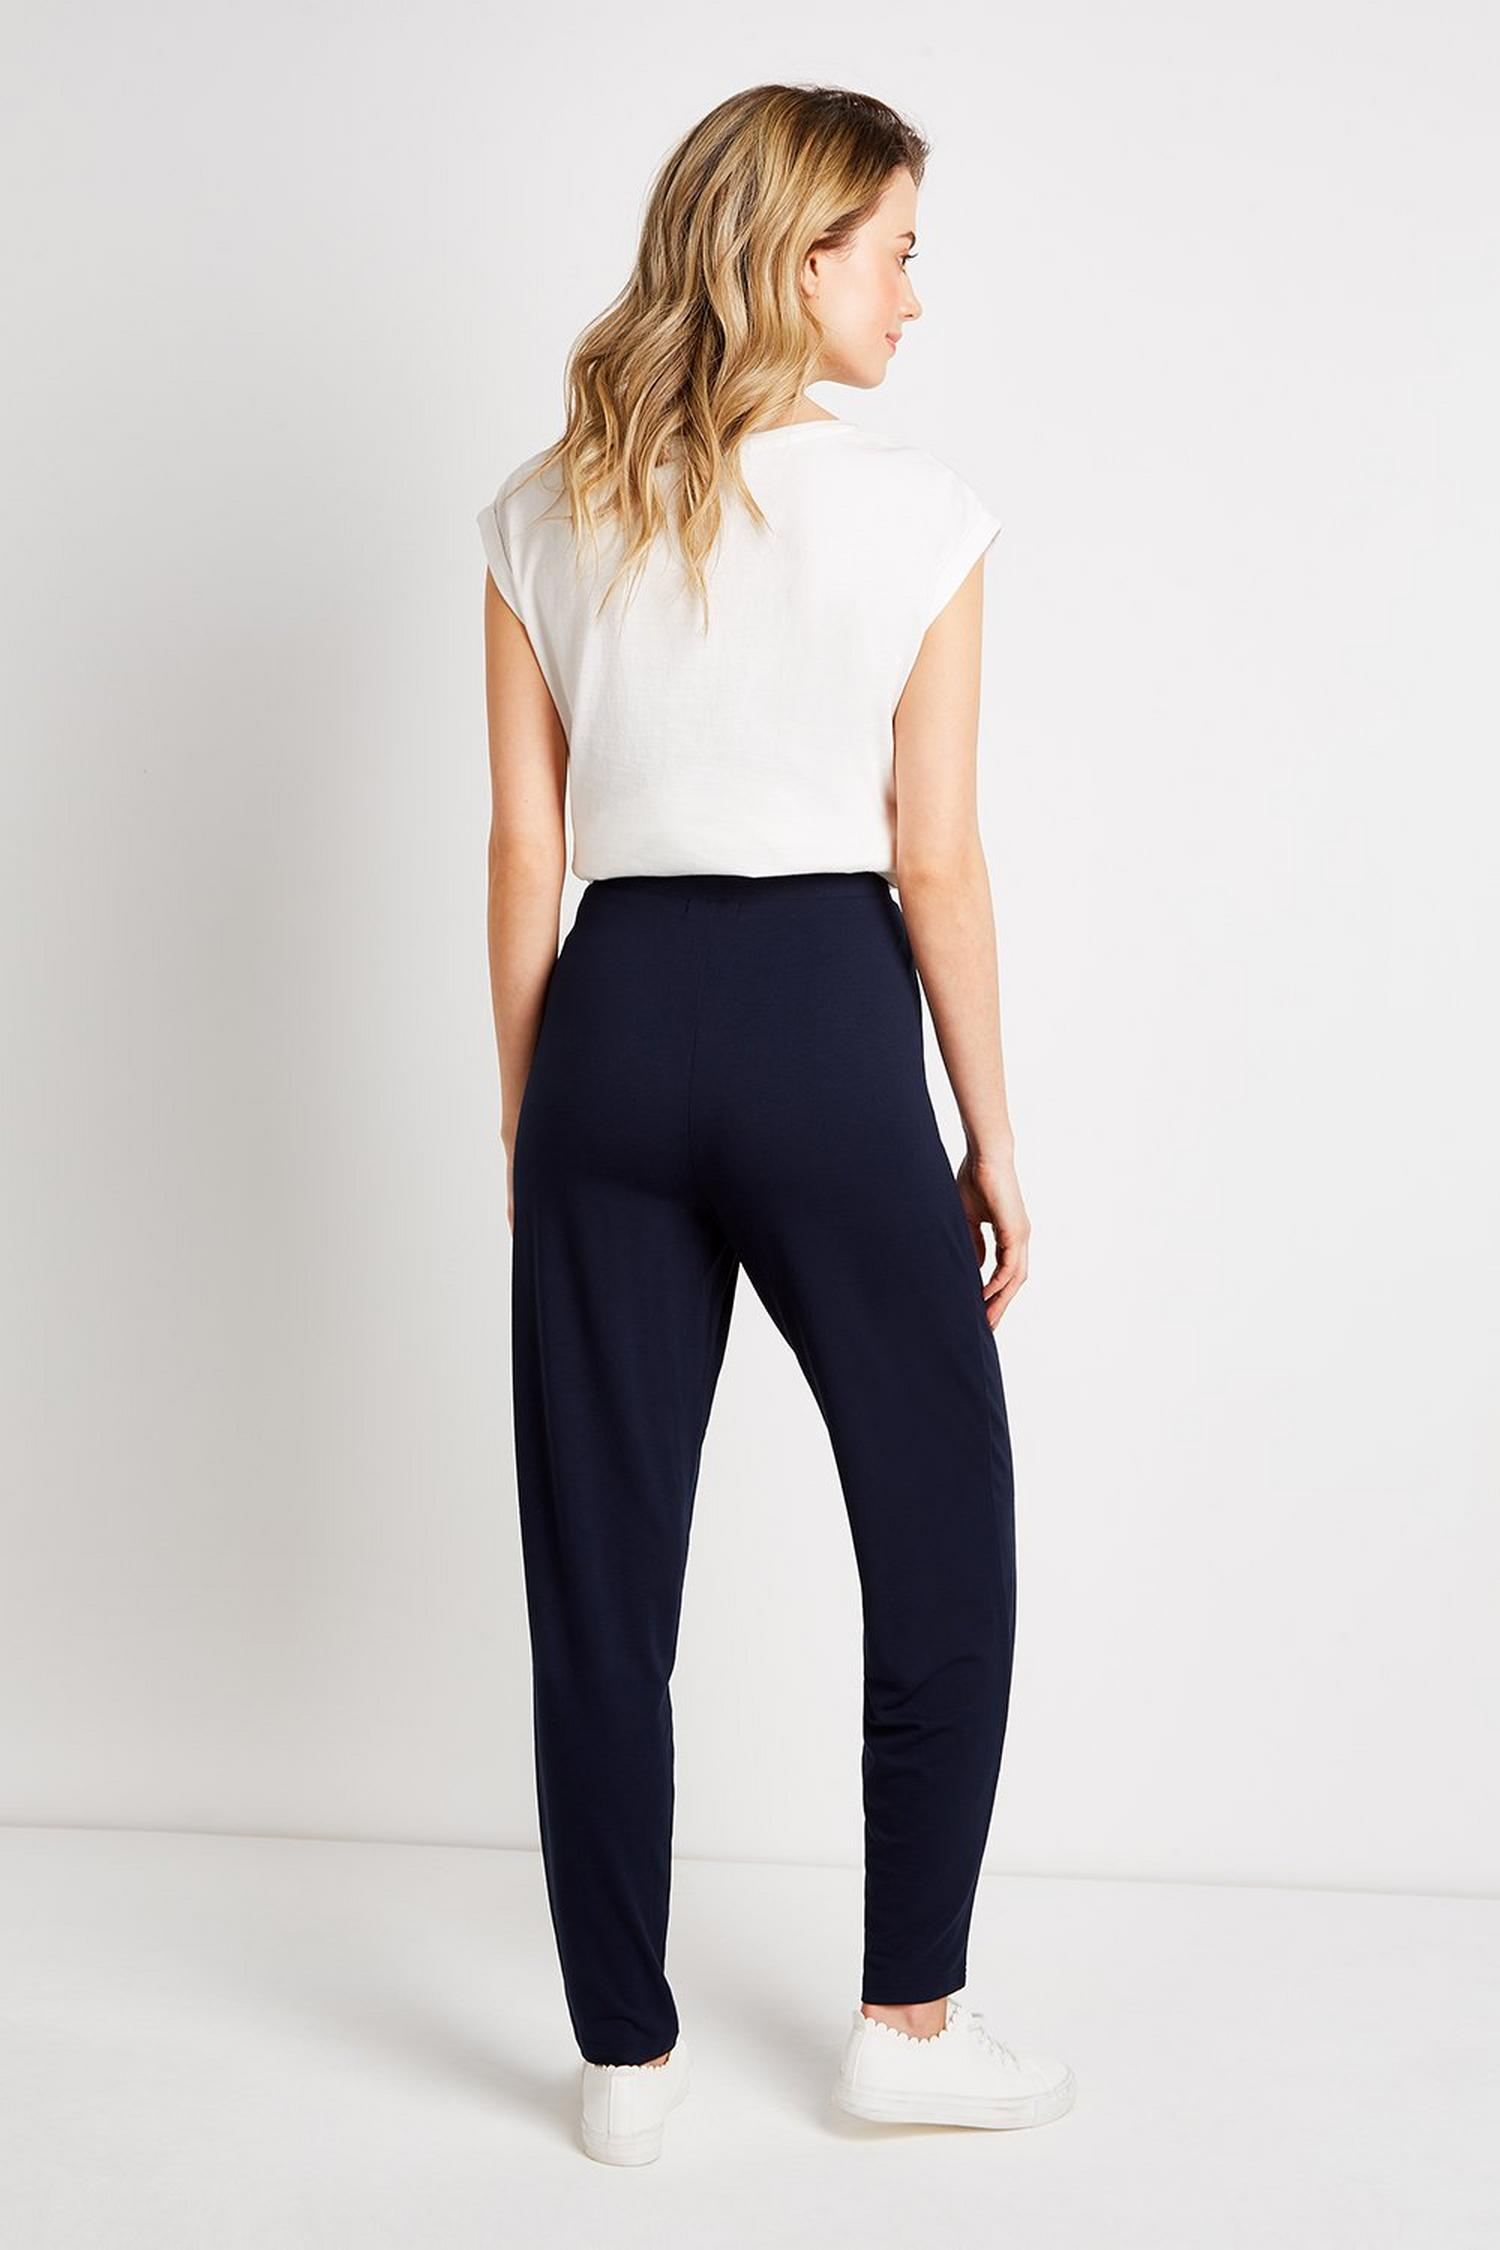 148 TALL Navy Tapered Trousers image number 3